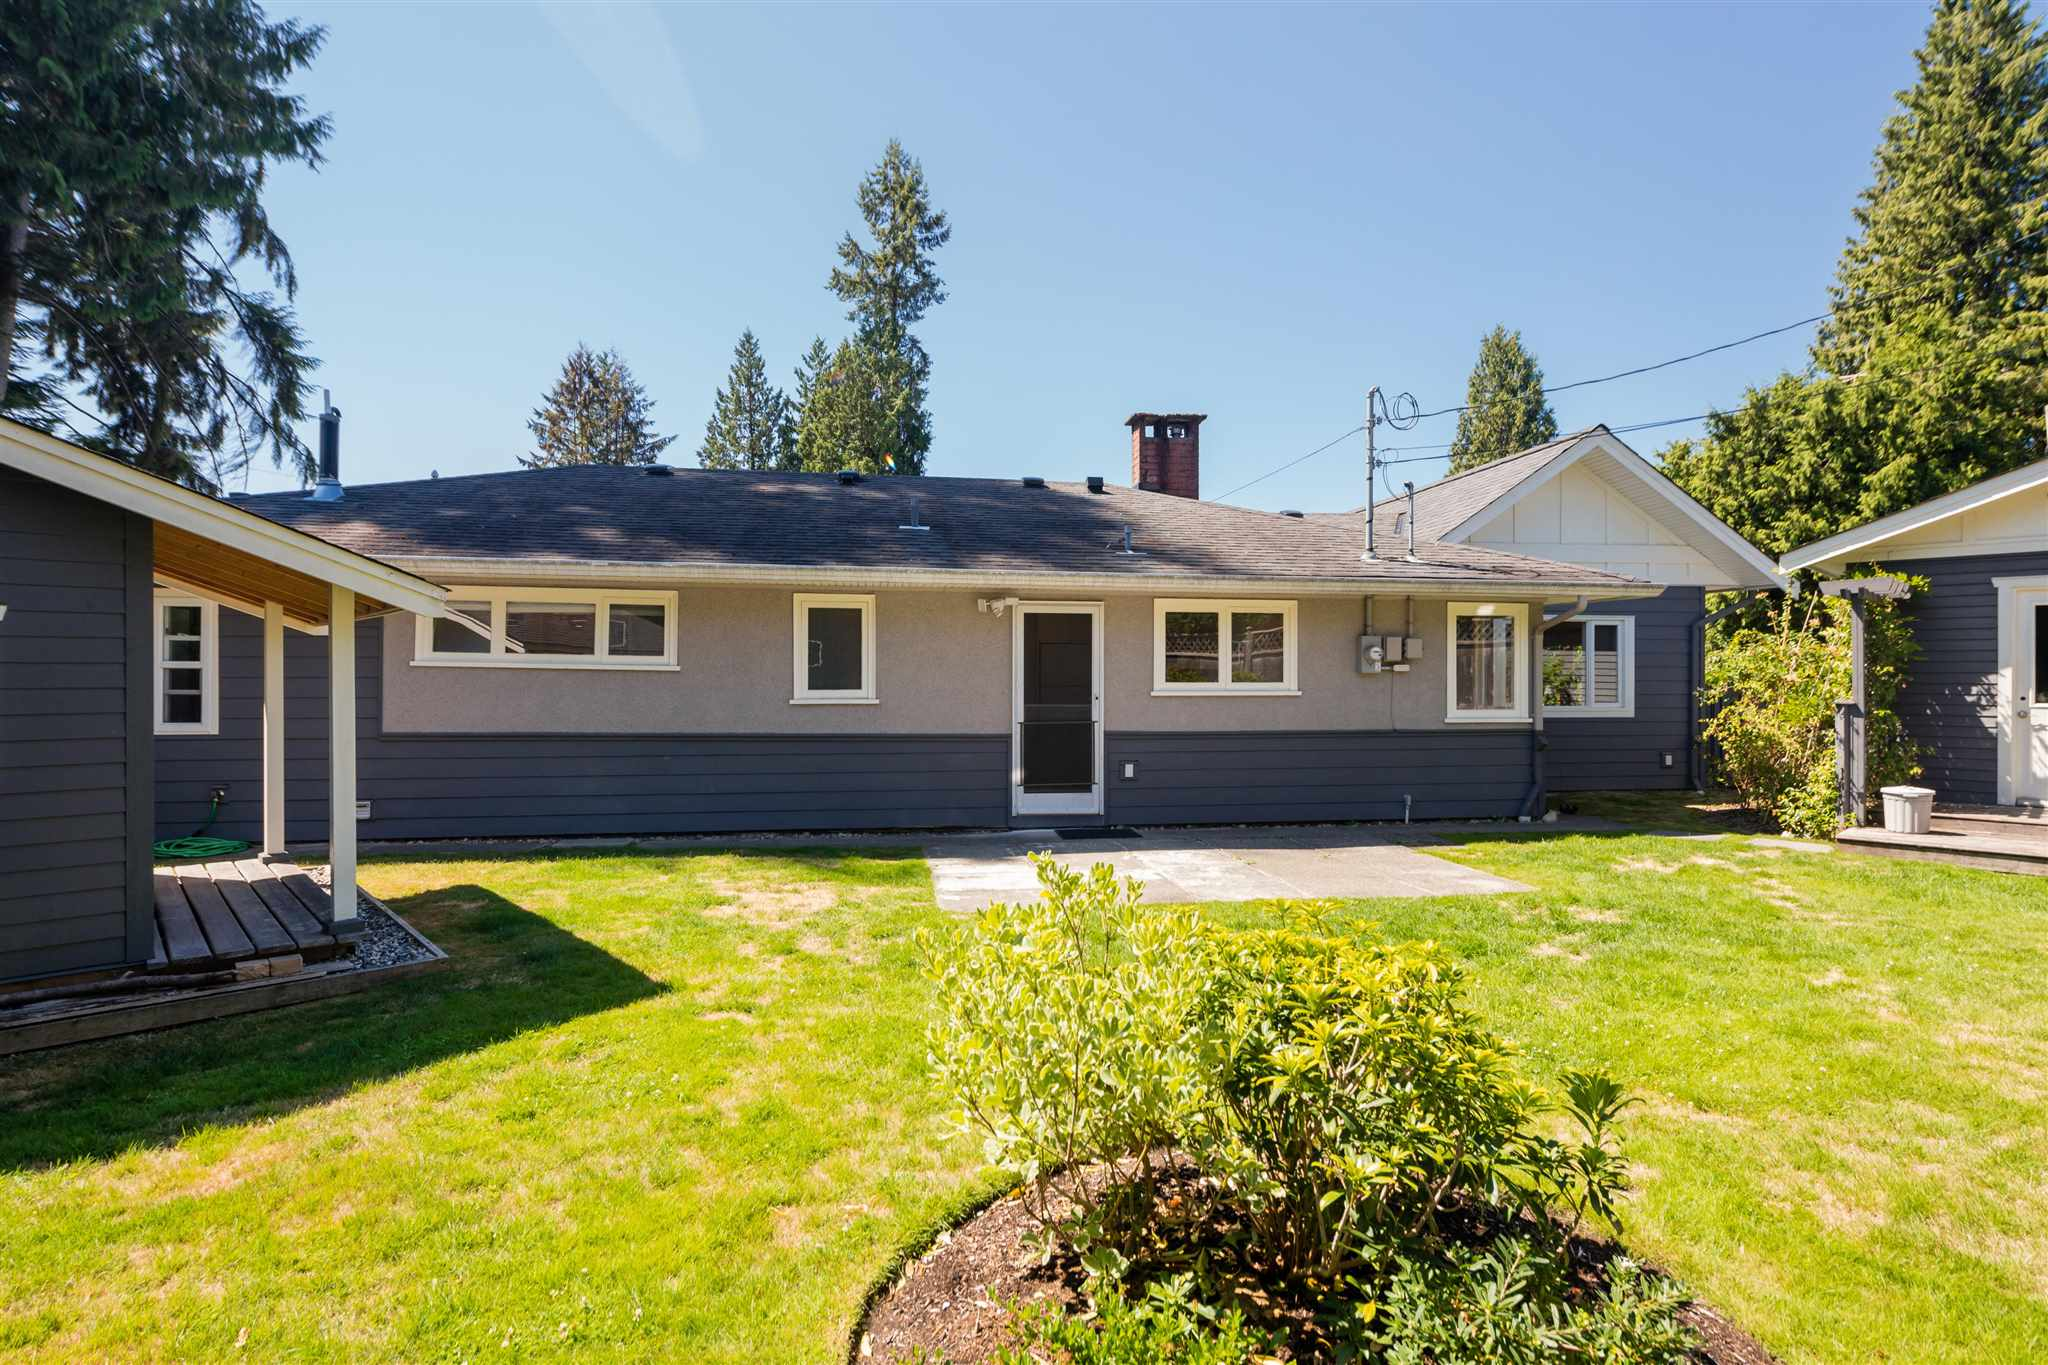 960 W QUEENS ROAD - Edgemont House/Single Family for sale, 2 Bedrooms (R2623308) - #18